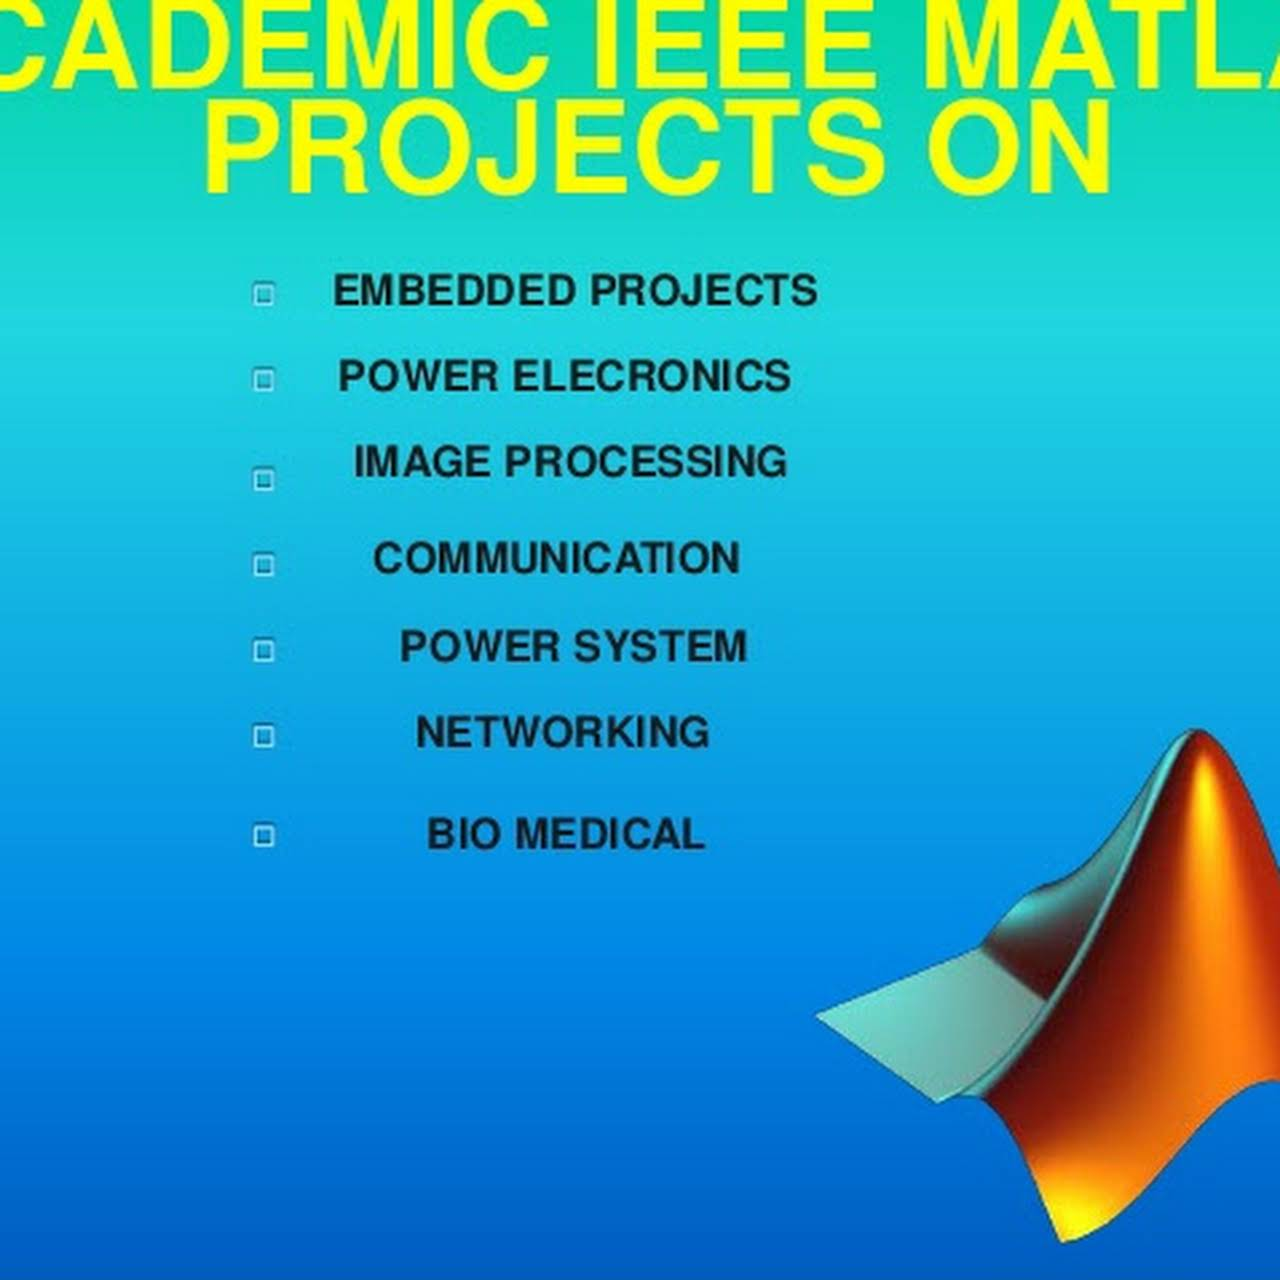 IEEE RESEARCH WORK/MATLAB PROJECTS/IEEE PROJECTS - Software